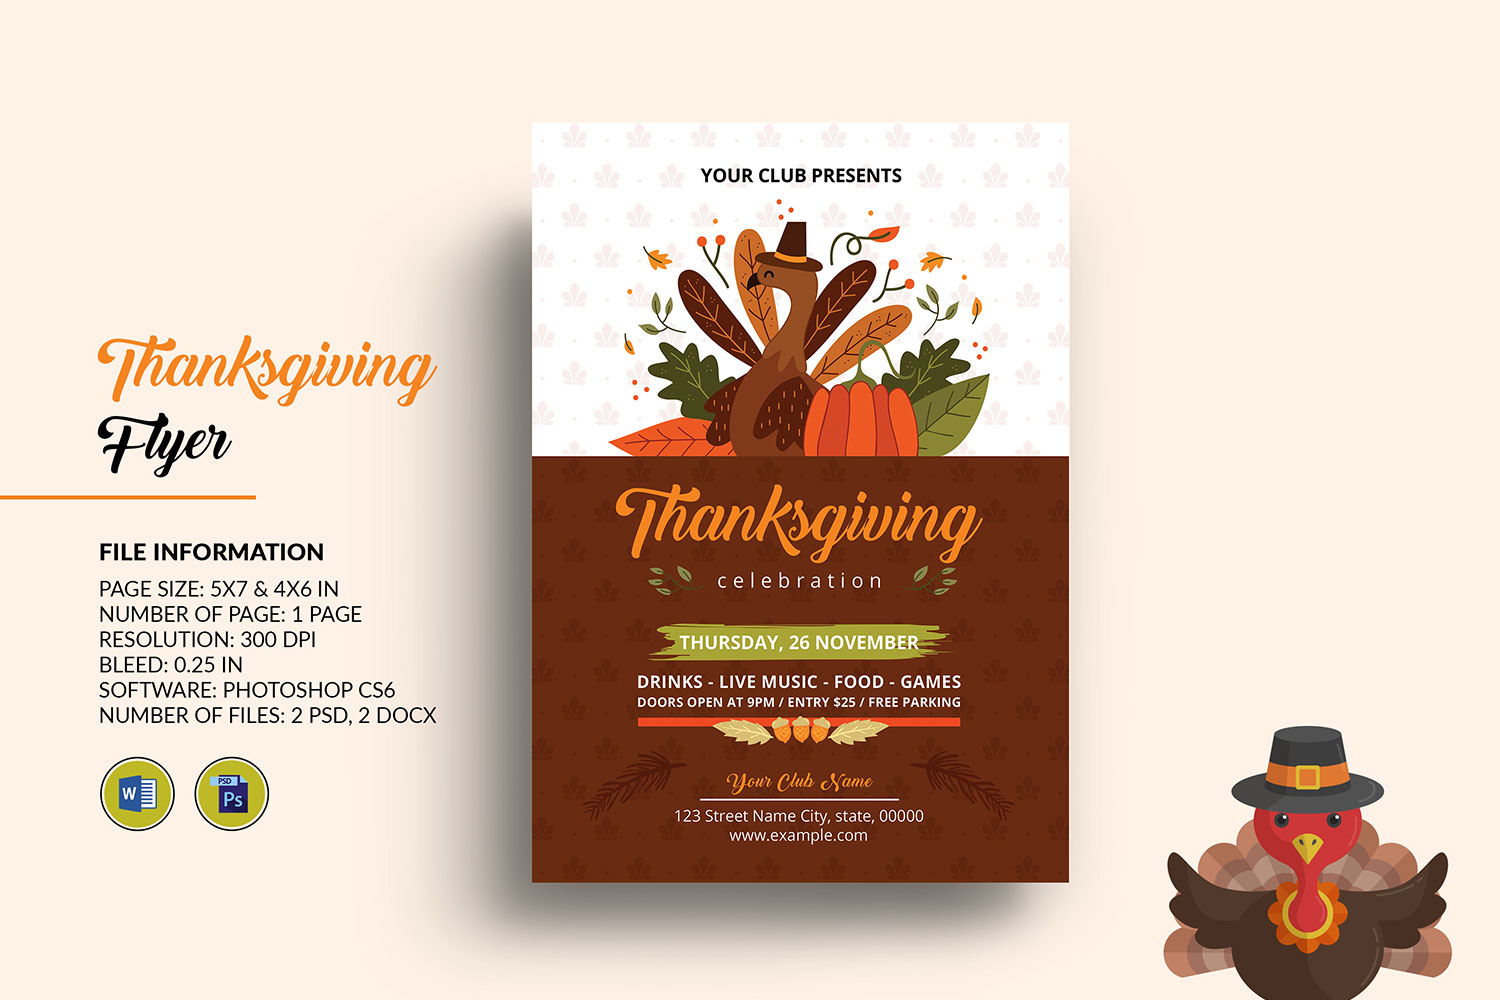 Thanksgiving Party Flyer Template Graphic By Sistecbd Creative Fabrica